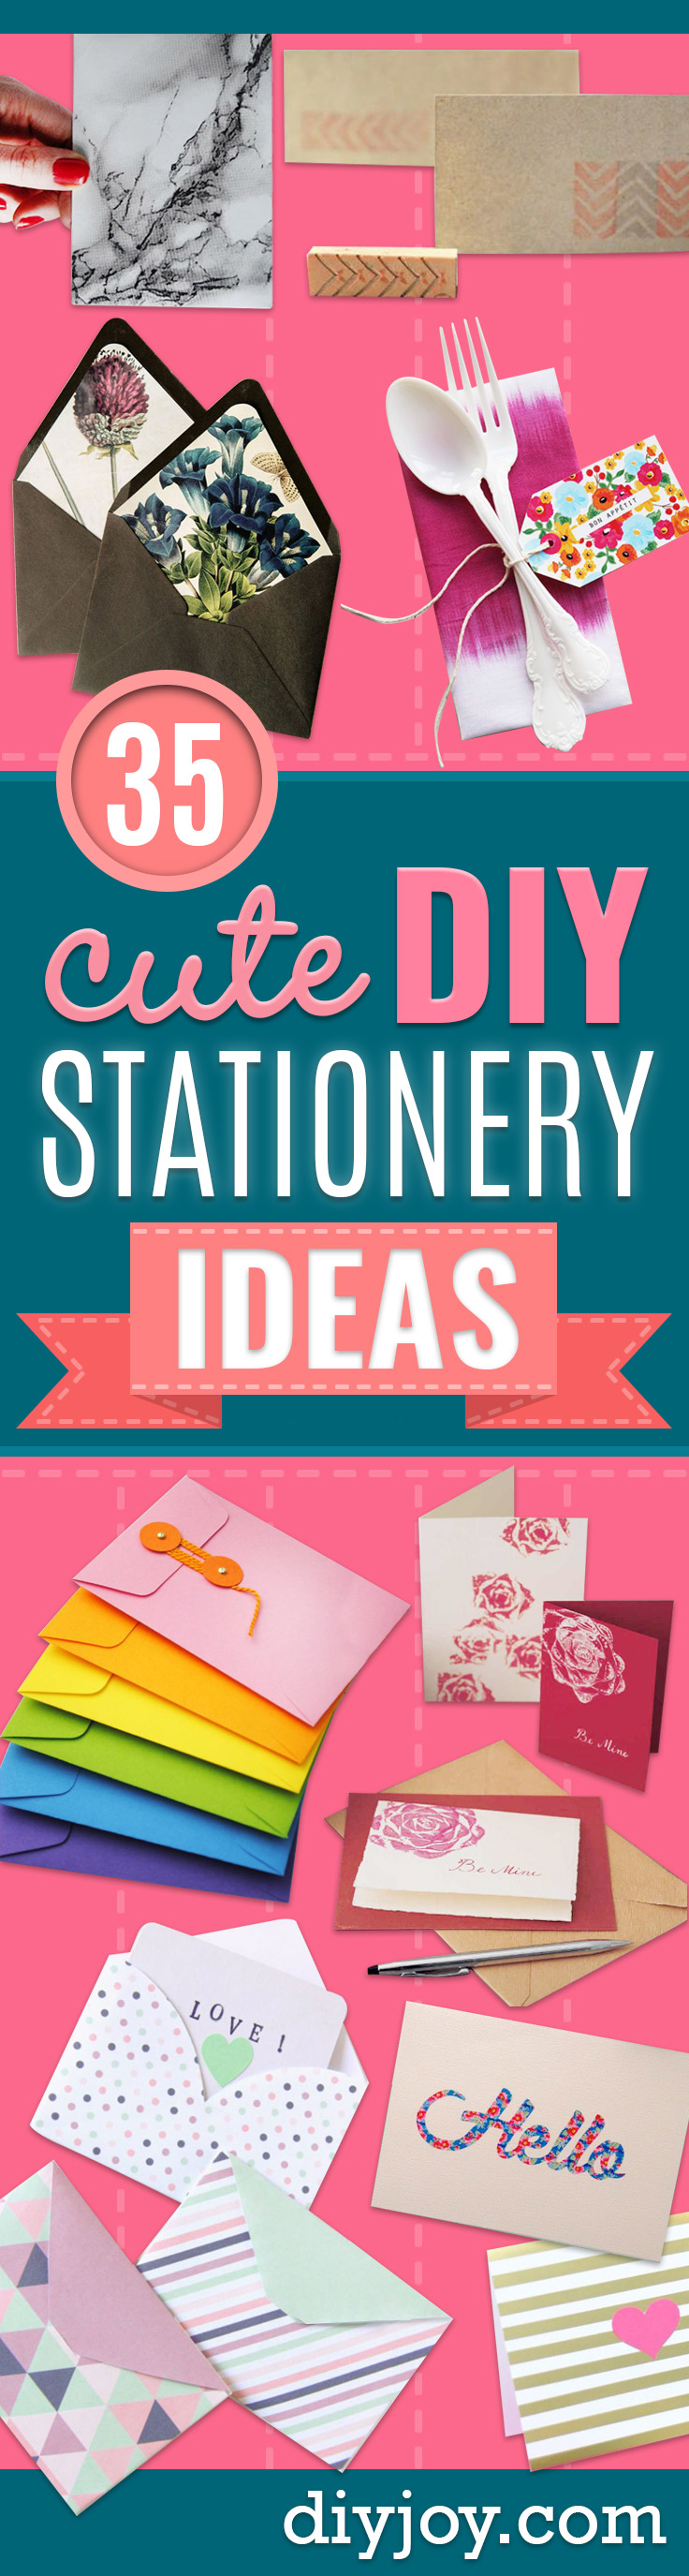 DIY Stationery Ideas - Easy Projects for Making, Decorating and Embellishing Stationary - Cute Personal Papers and Cards With Creative Art Ideas and Designs - Monogram and Brush Lettering Tips and Tutorials for Envelopes and Notebook - Stencil, Marble, Paint and Ink, Emboss Tutorials - A Handmade Card Set or Box Makes An Awesome DIY Gift Idea - Printables and Cool Ideas for Kids http://diyjoy.com/diy-stationery-ideas